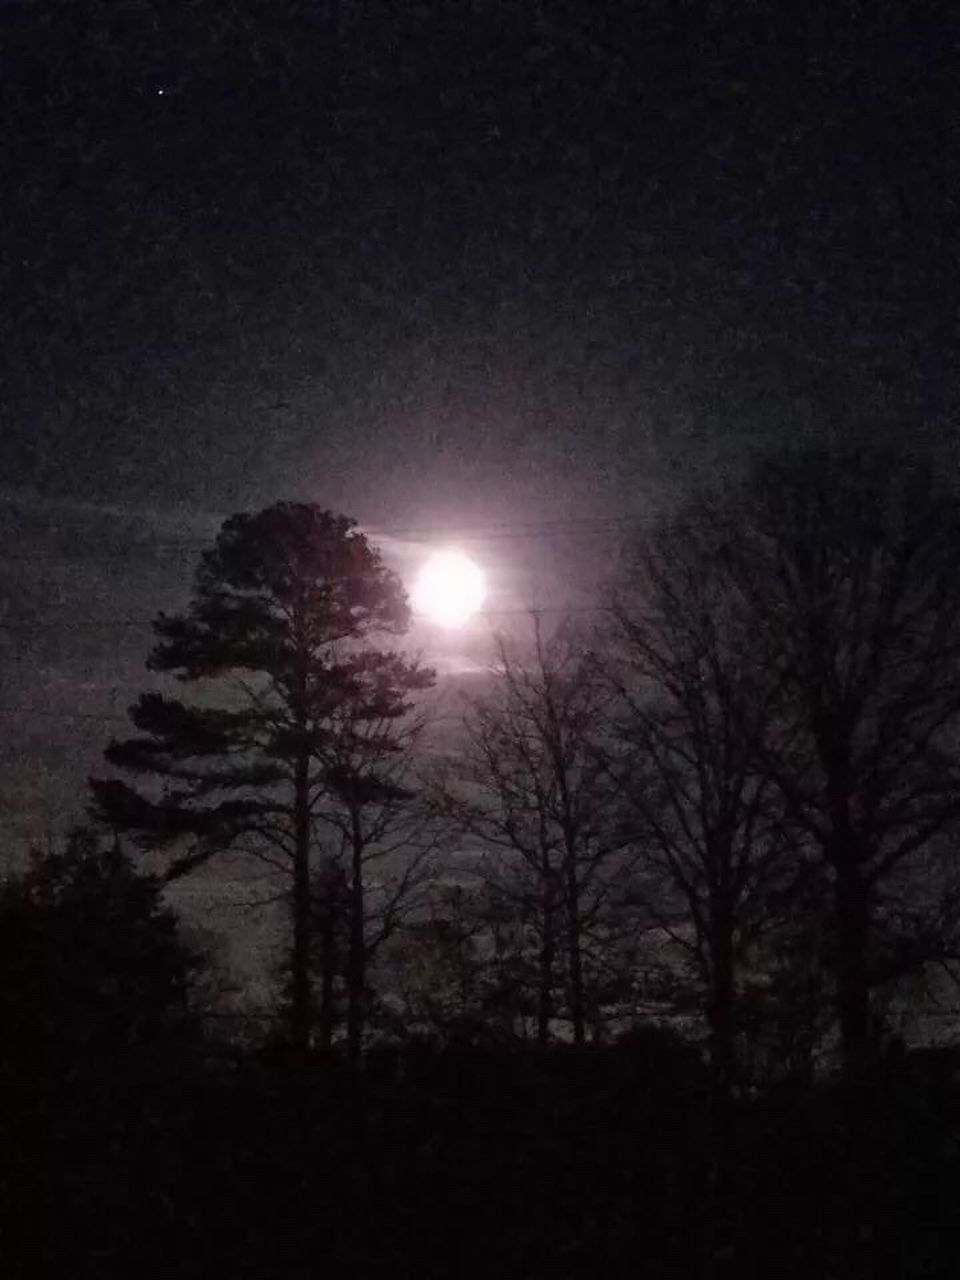 moon, sun, tree, beauty in nature, nature, moonlight, outdoors, scenics, tranquil scene, sky, tranquility, astronomy, low angle view, no people